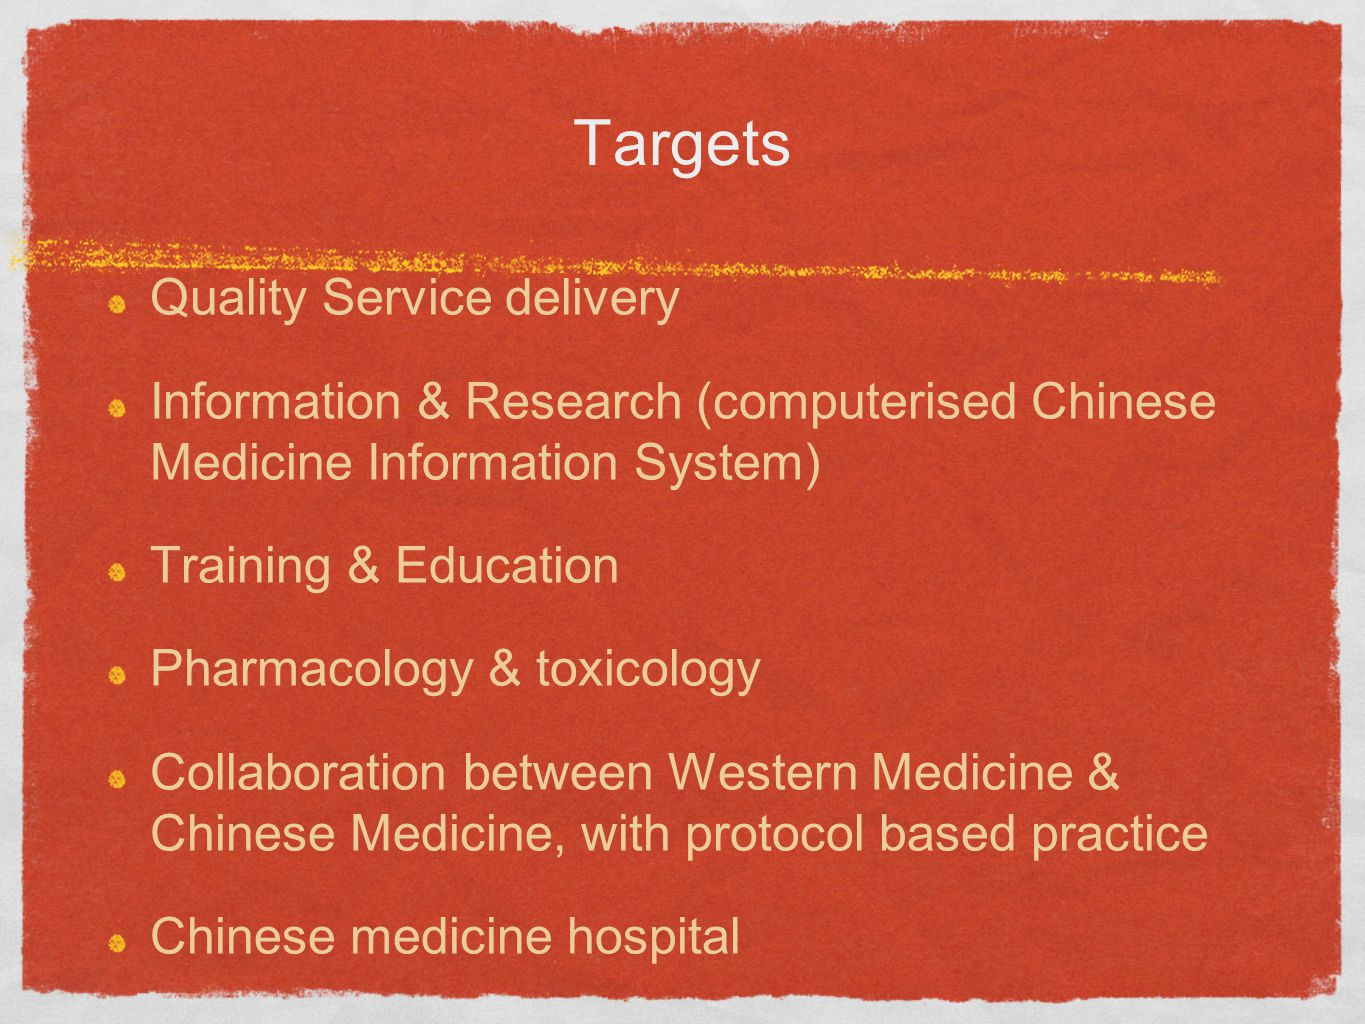 Targets Quality Service delivery Information & Research (computerised Chinese Medicine Information System) Training & Education Pharmacology & toxicology Collaboration between Western Medicine & Chinese Medicine, with protocol based practice Chinese medicine hospital